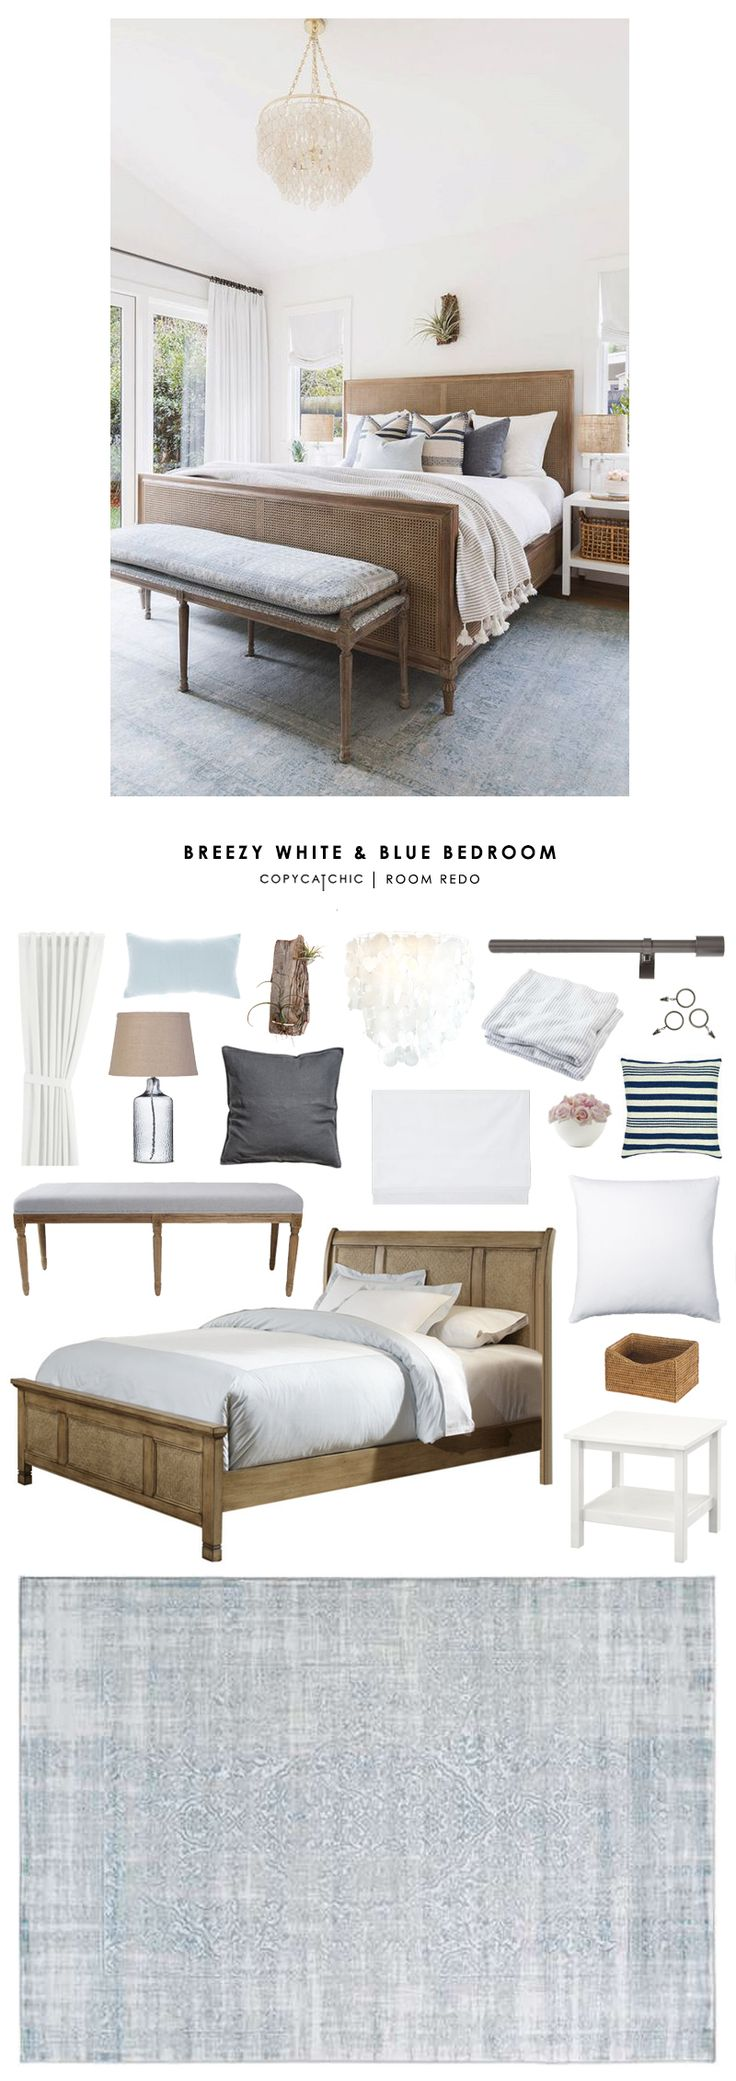 Copy Cat Chic Room Redo | Breezy White and Blue Bedroom